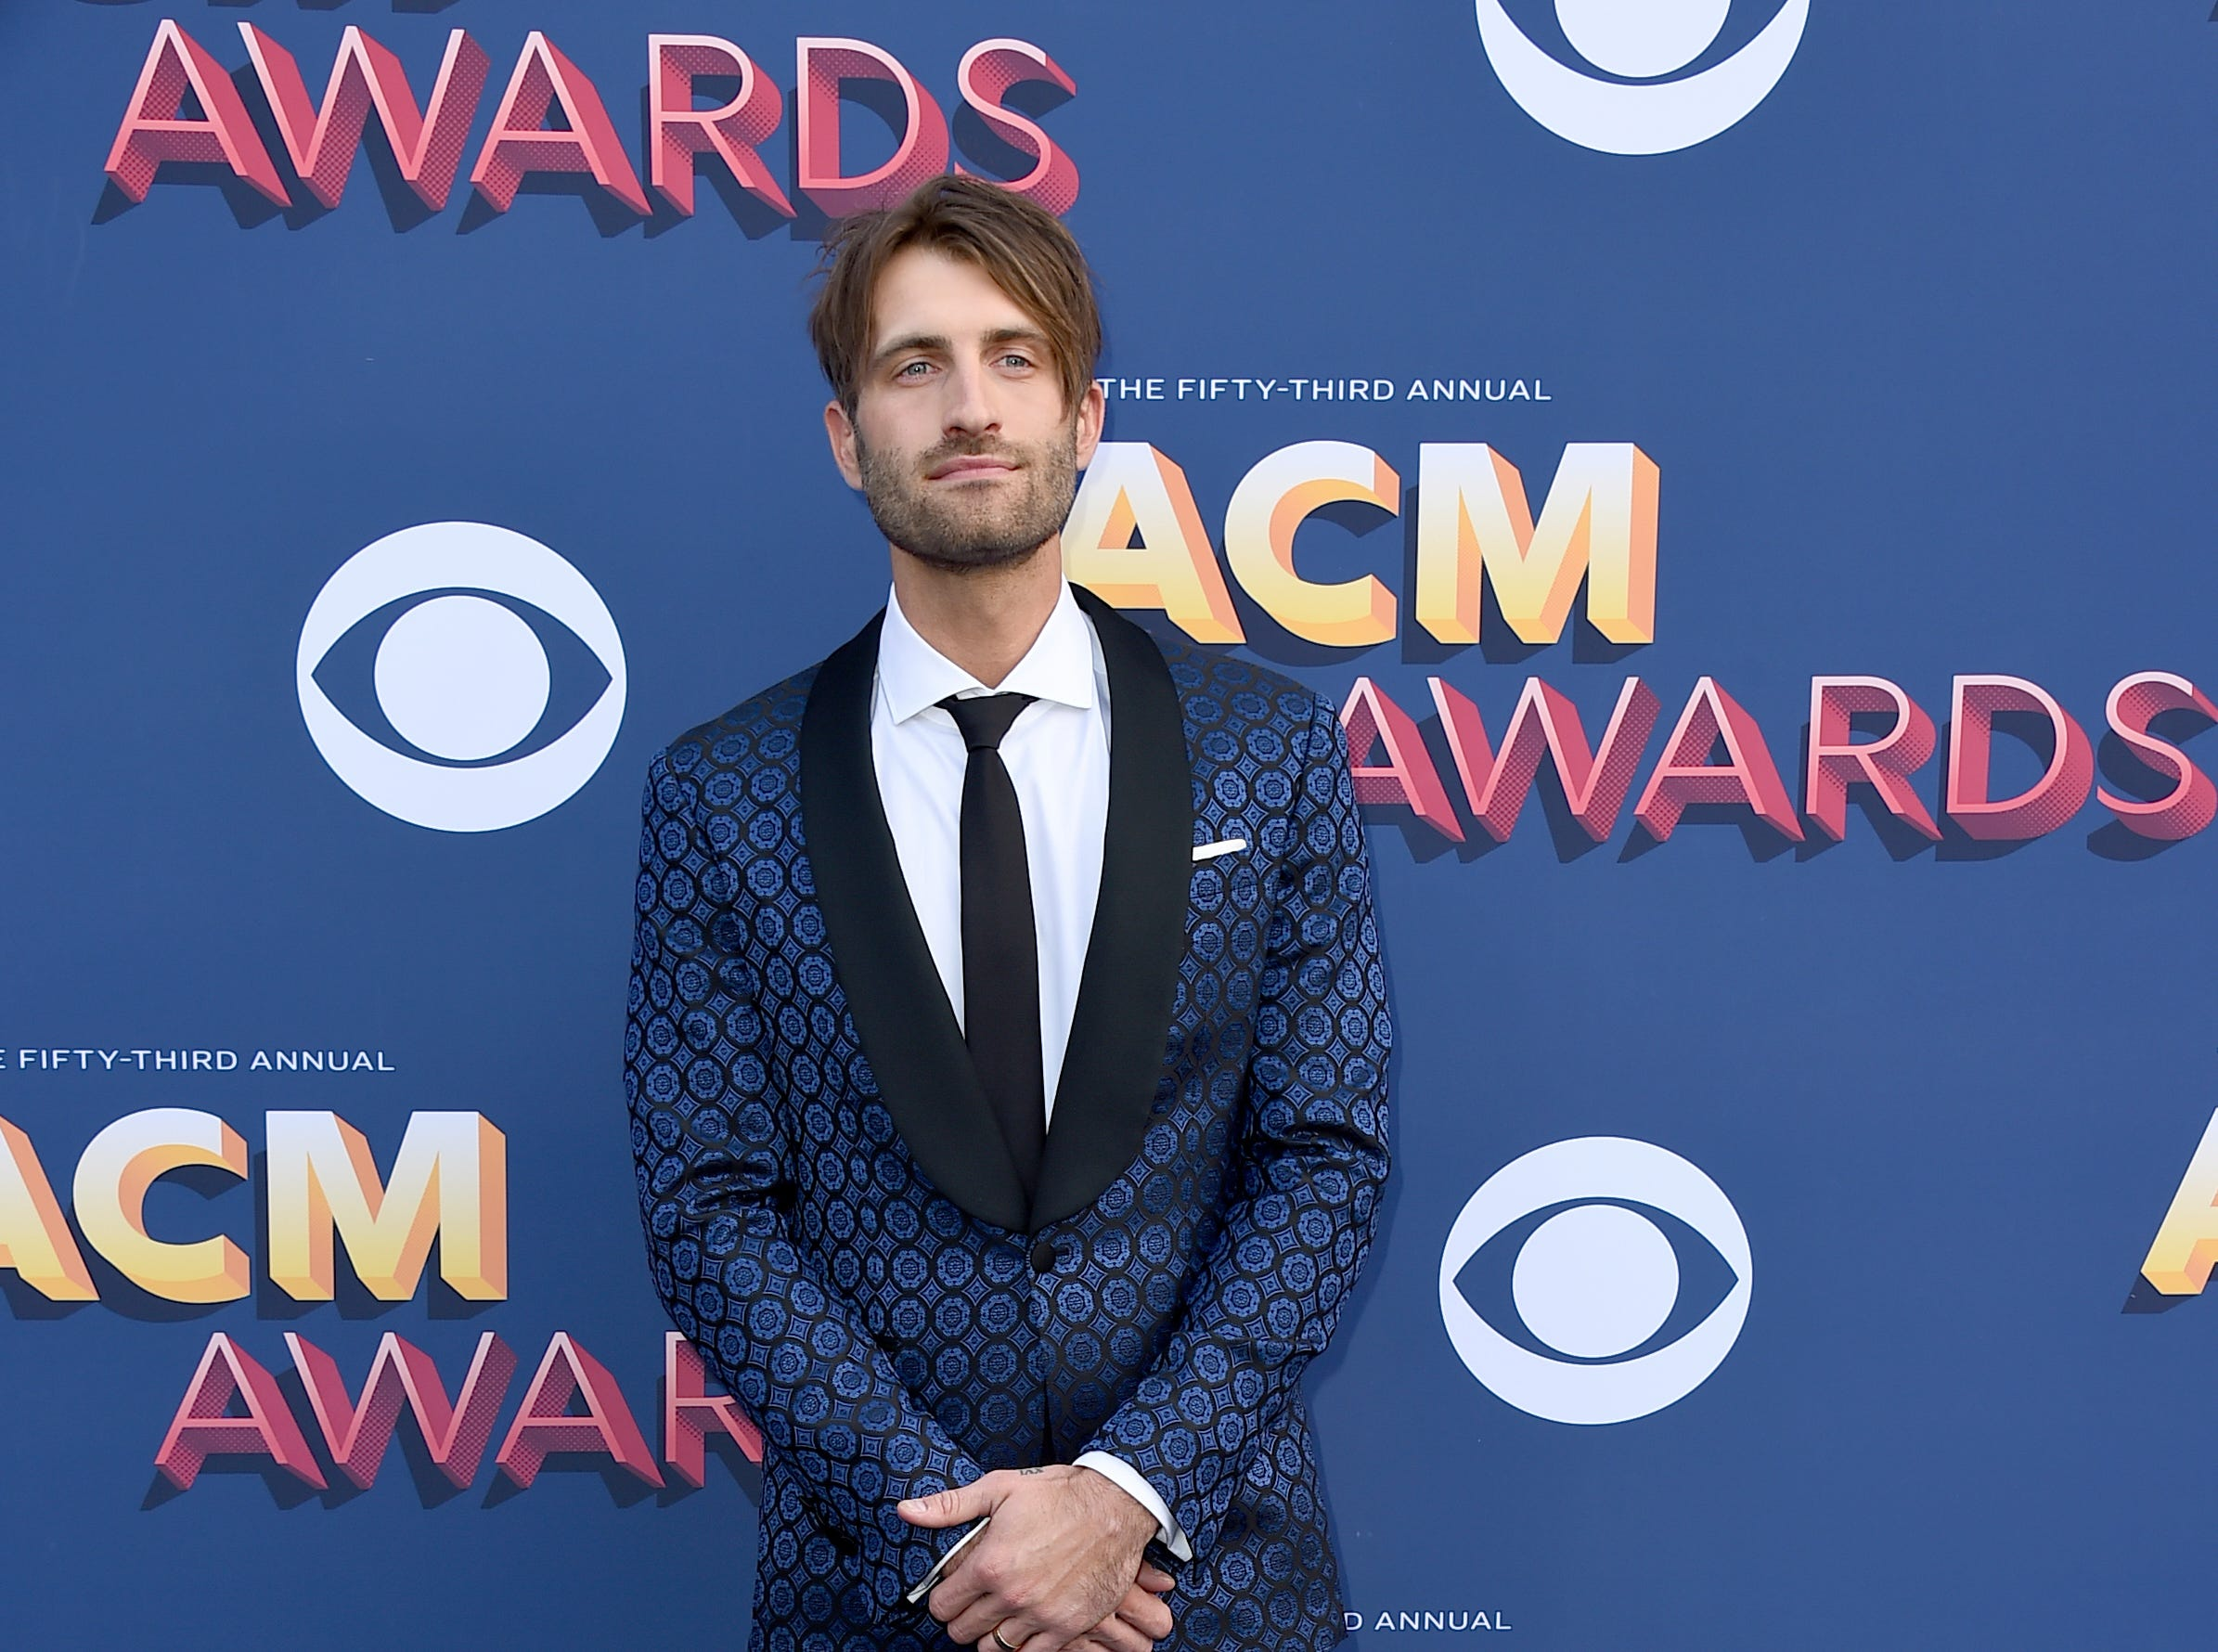 Ryan Hurd is scheduled to play the Chevy Riverfront Stage at CMA Fest 2019.